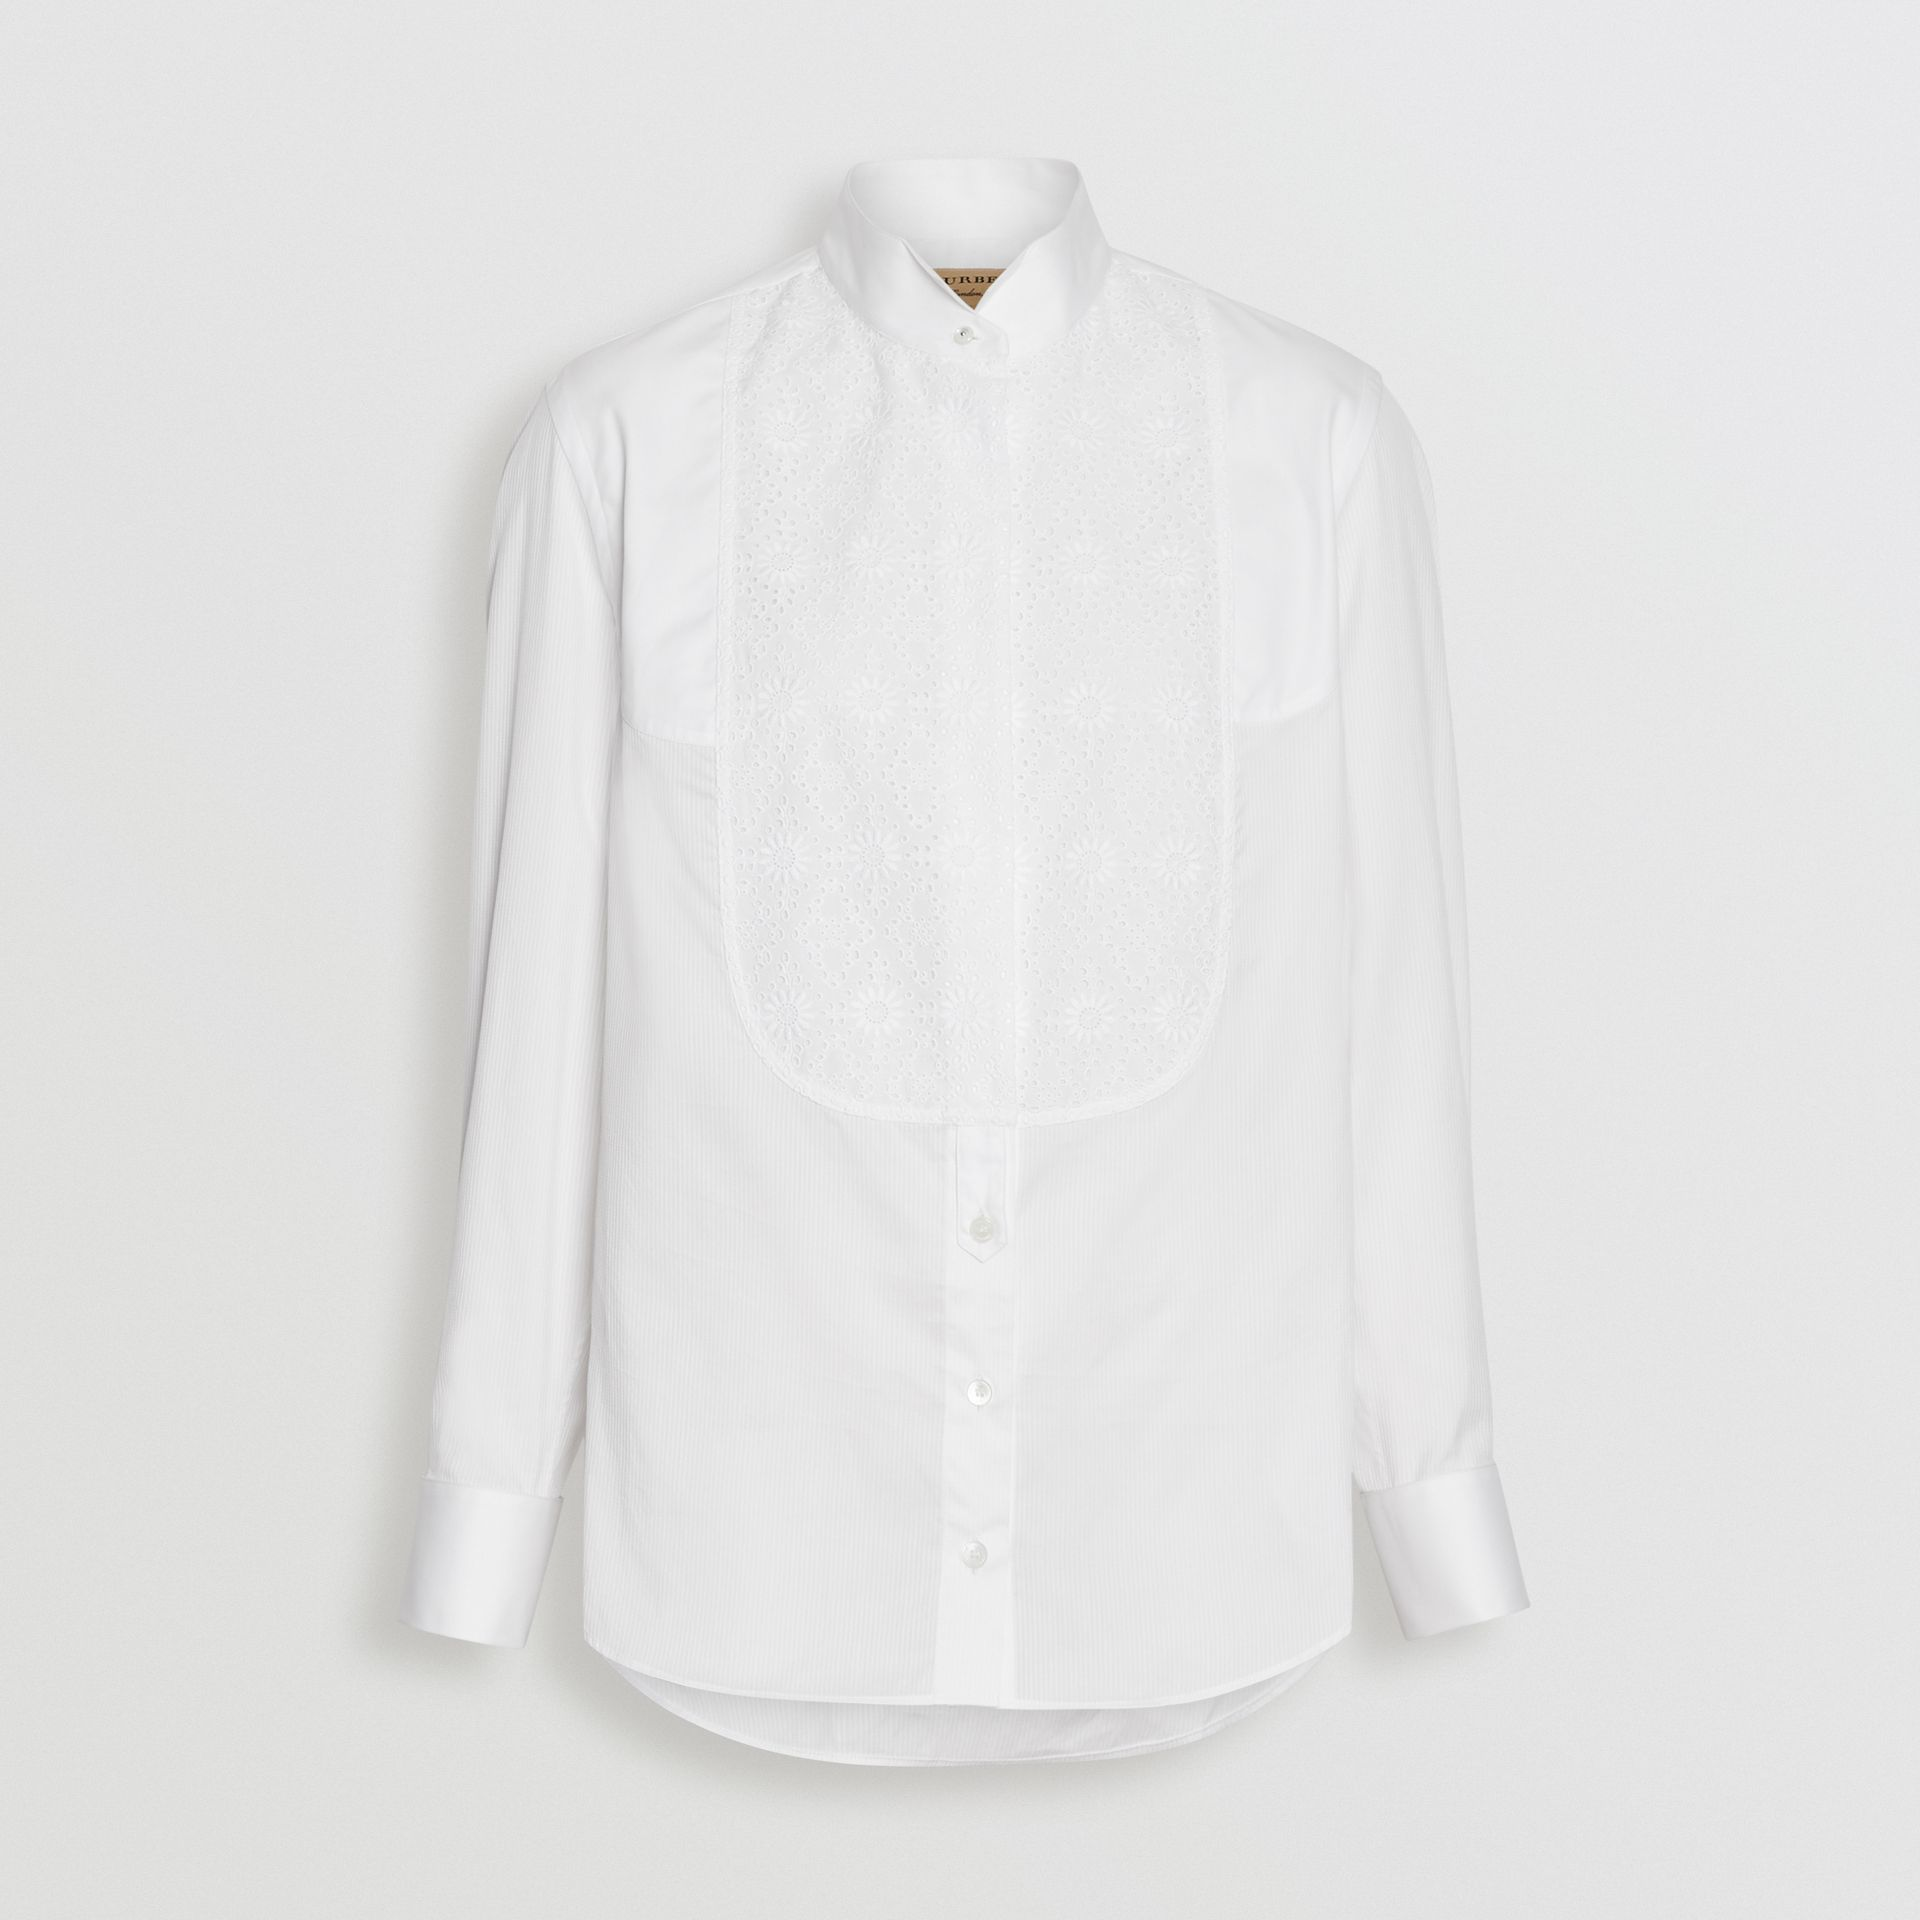 Floral Bib Silk Cotton Shirt in White - Women | Burberry - gallery image 3